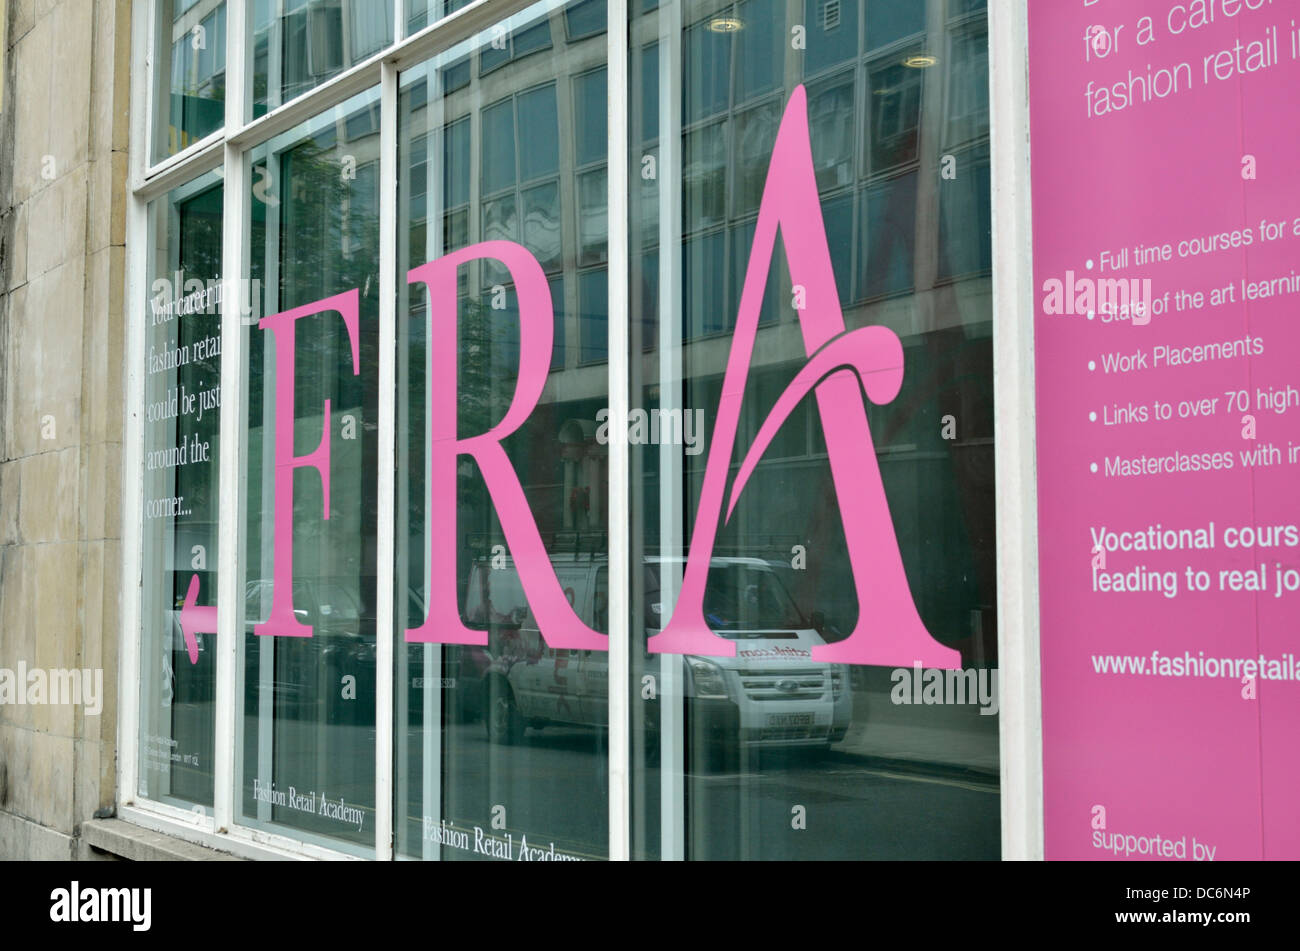 Fashion Retail Academy (FRA) offices in Rathbone Place, Fitzrovia, London, UK. - Stock Image